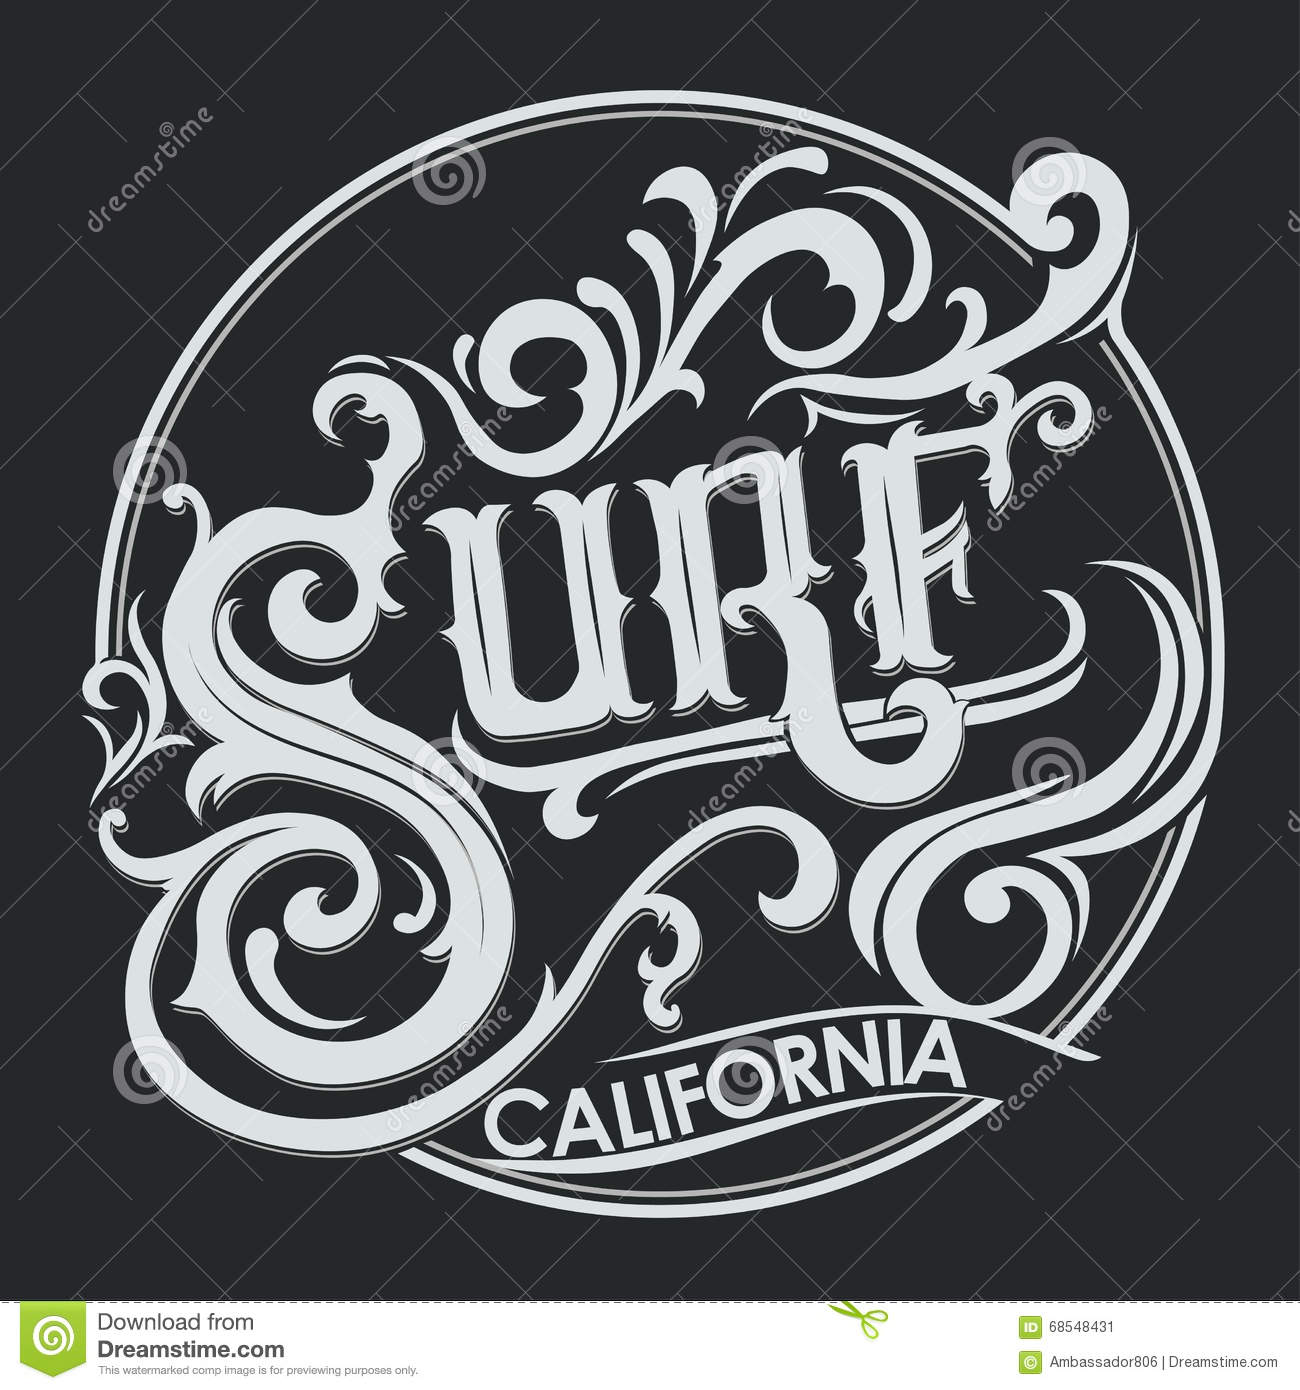 Surfing T-shirt Graphic Design Stock Vector - Illustration of long